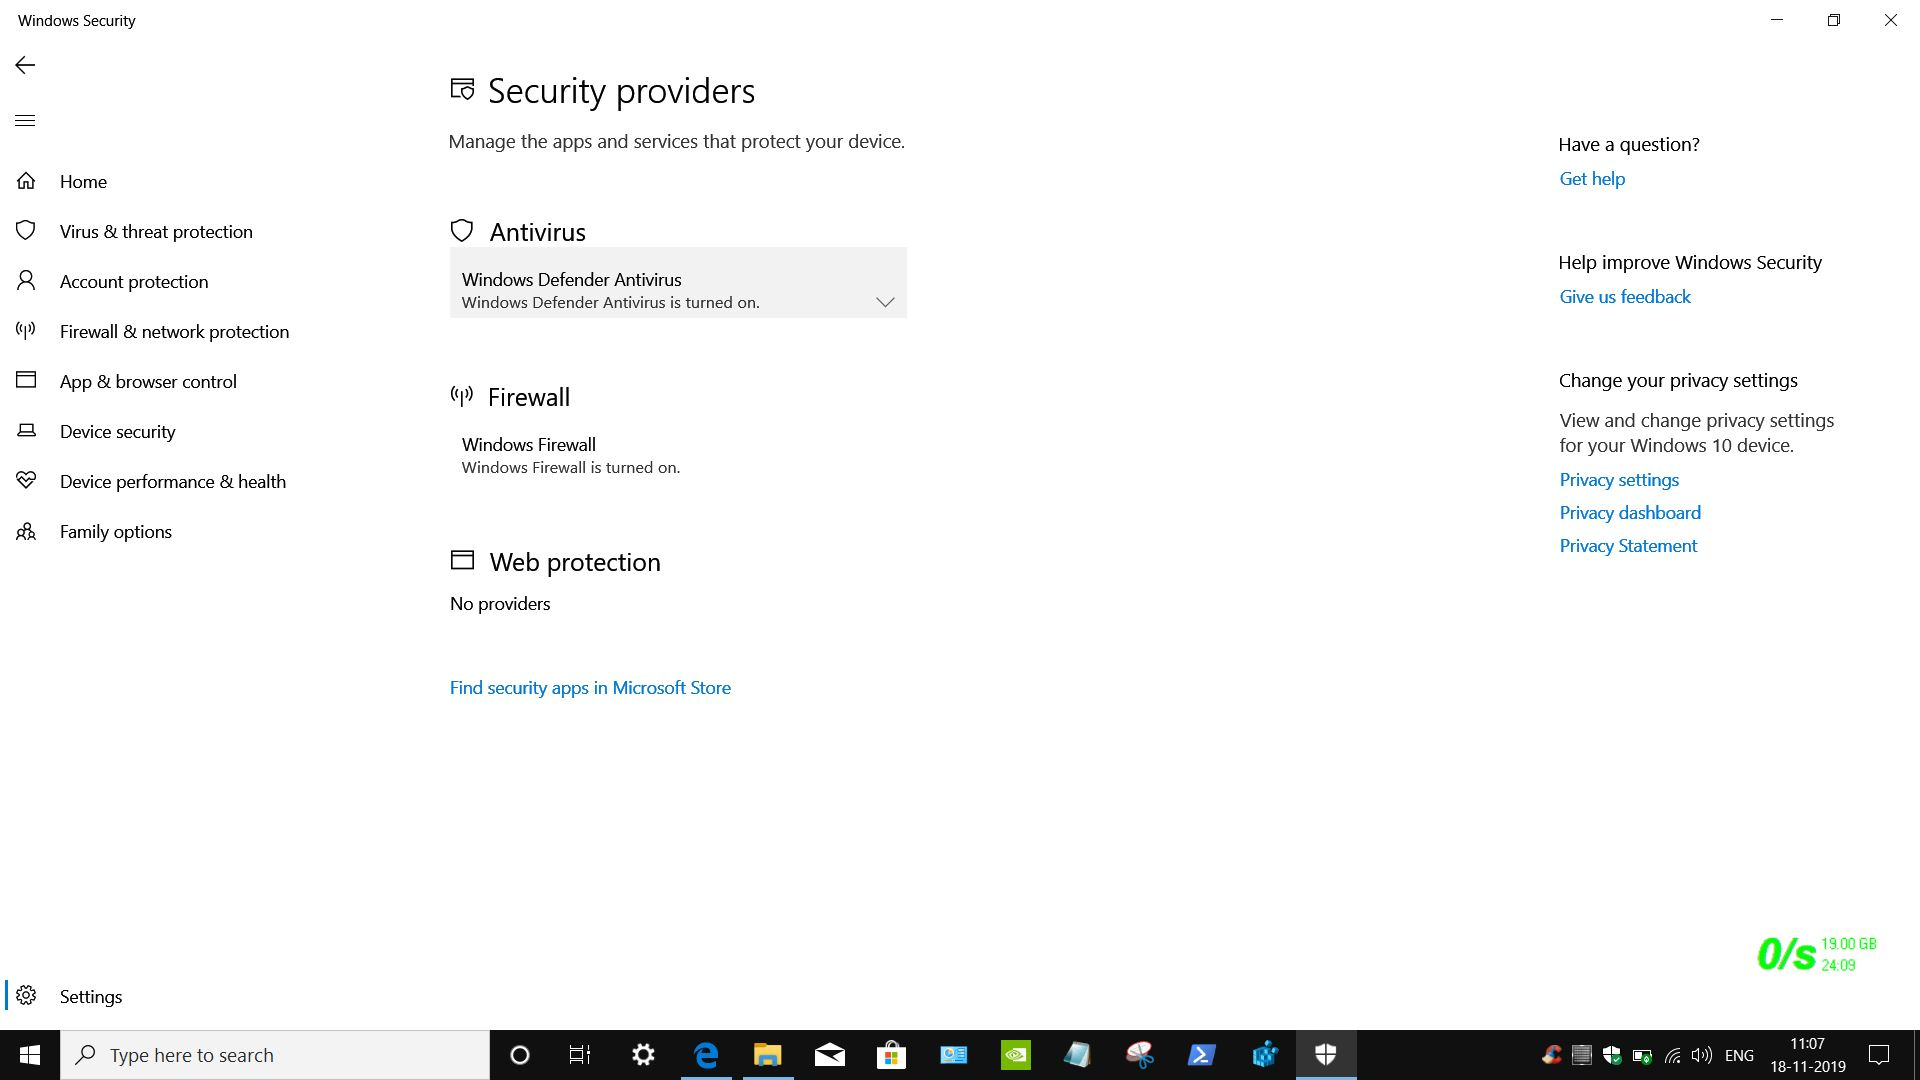 """I have Windows Defender """" under """"web protection"""" it states """"no providers"""". Does this mean I... ffcdecfd-4227-43e3-9bdf-c59d3897ba53?upload=true.jpg"""